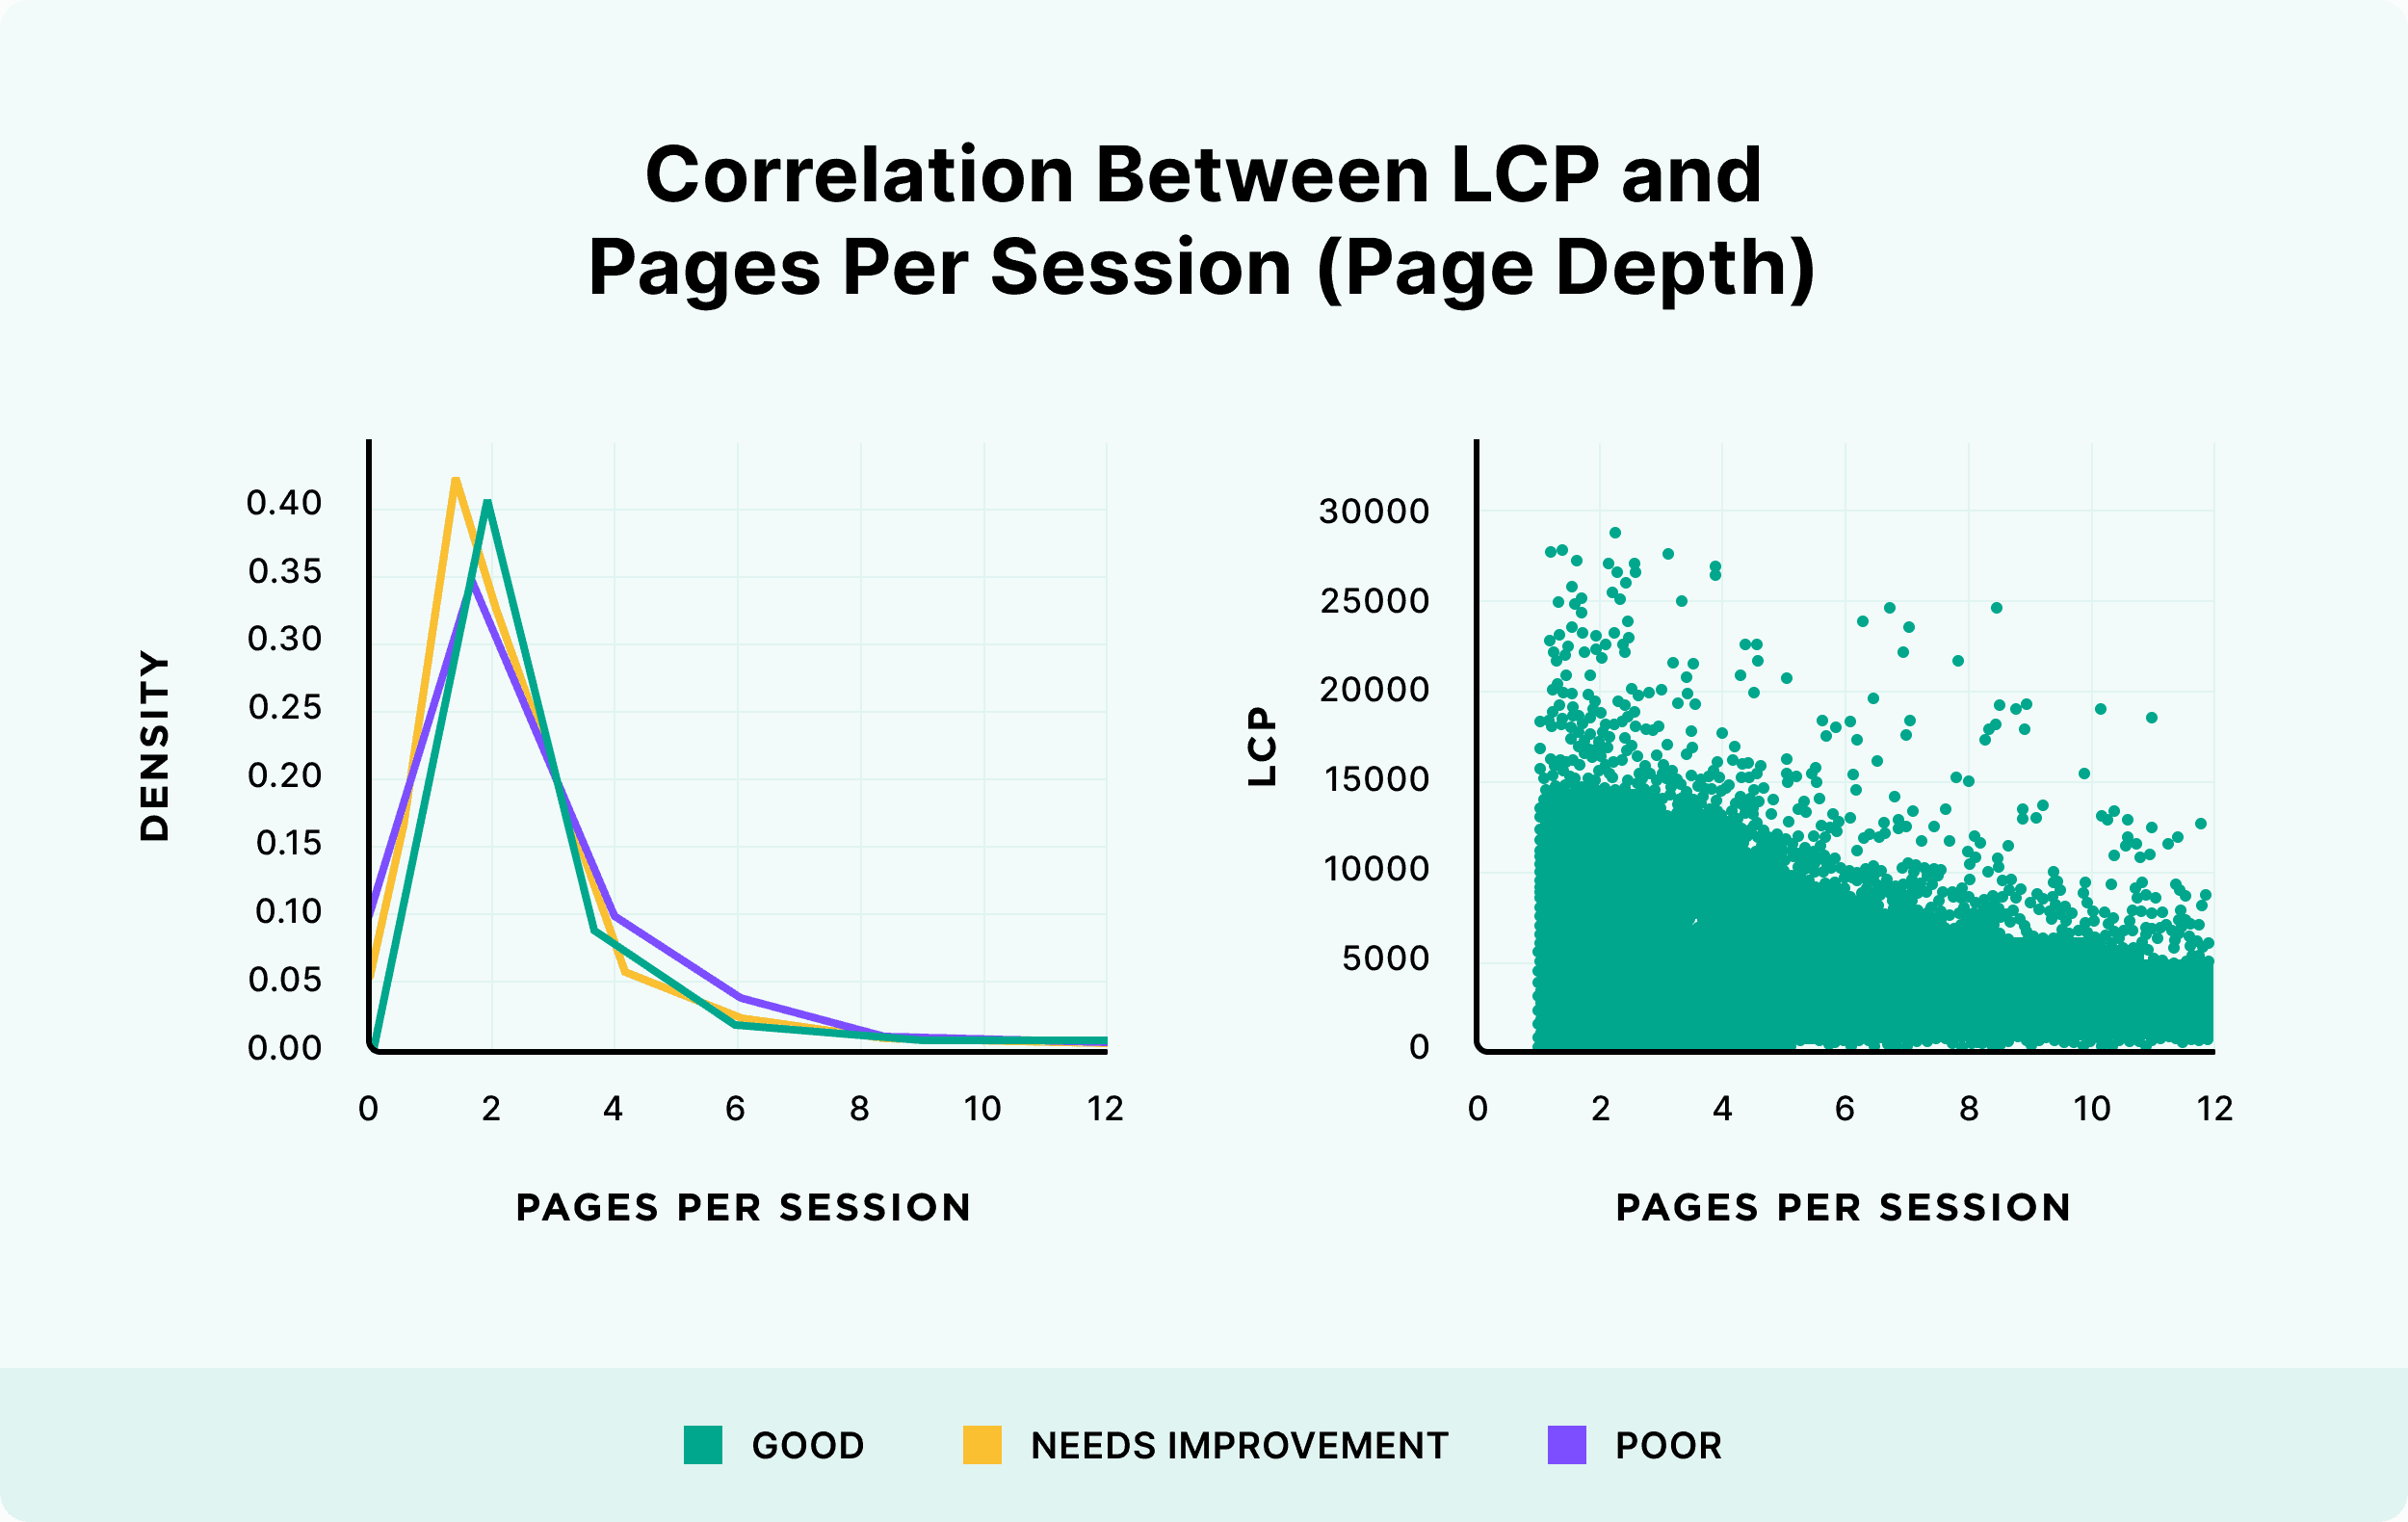 Correlation between LCP and pages per session